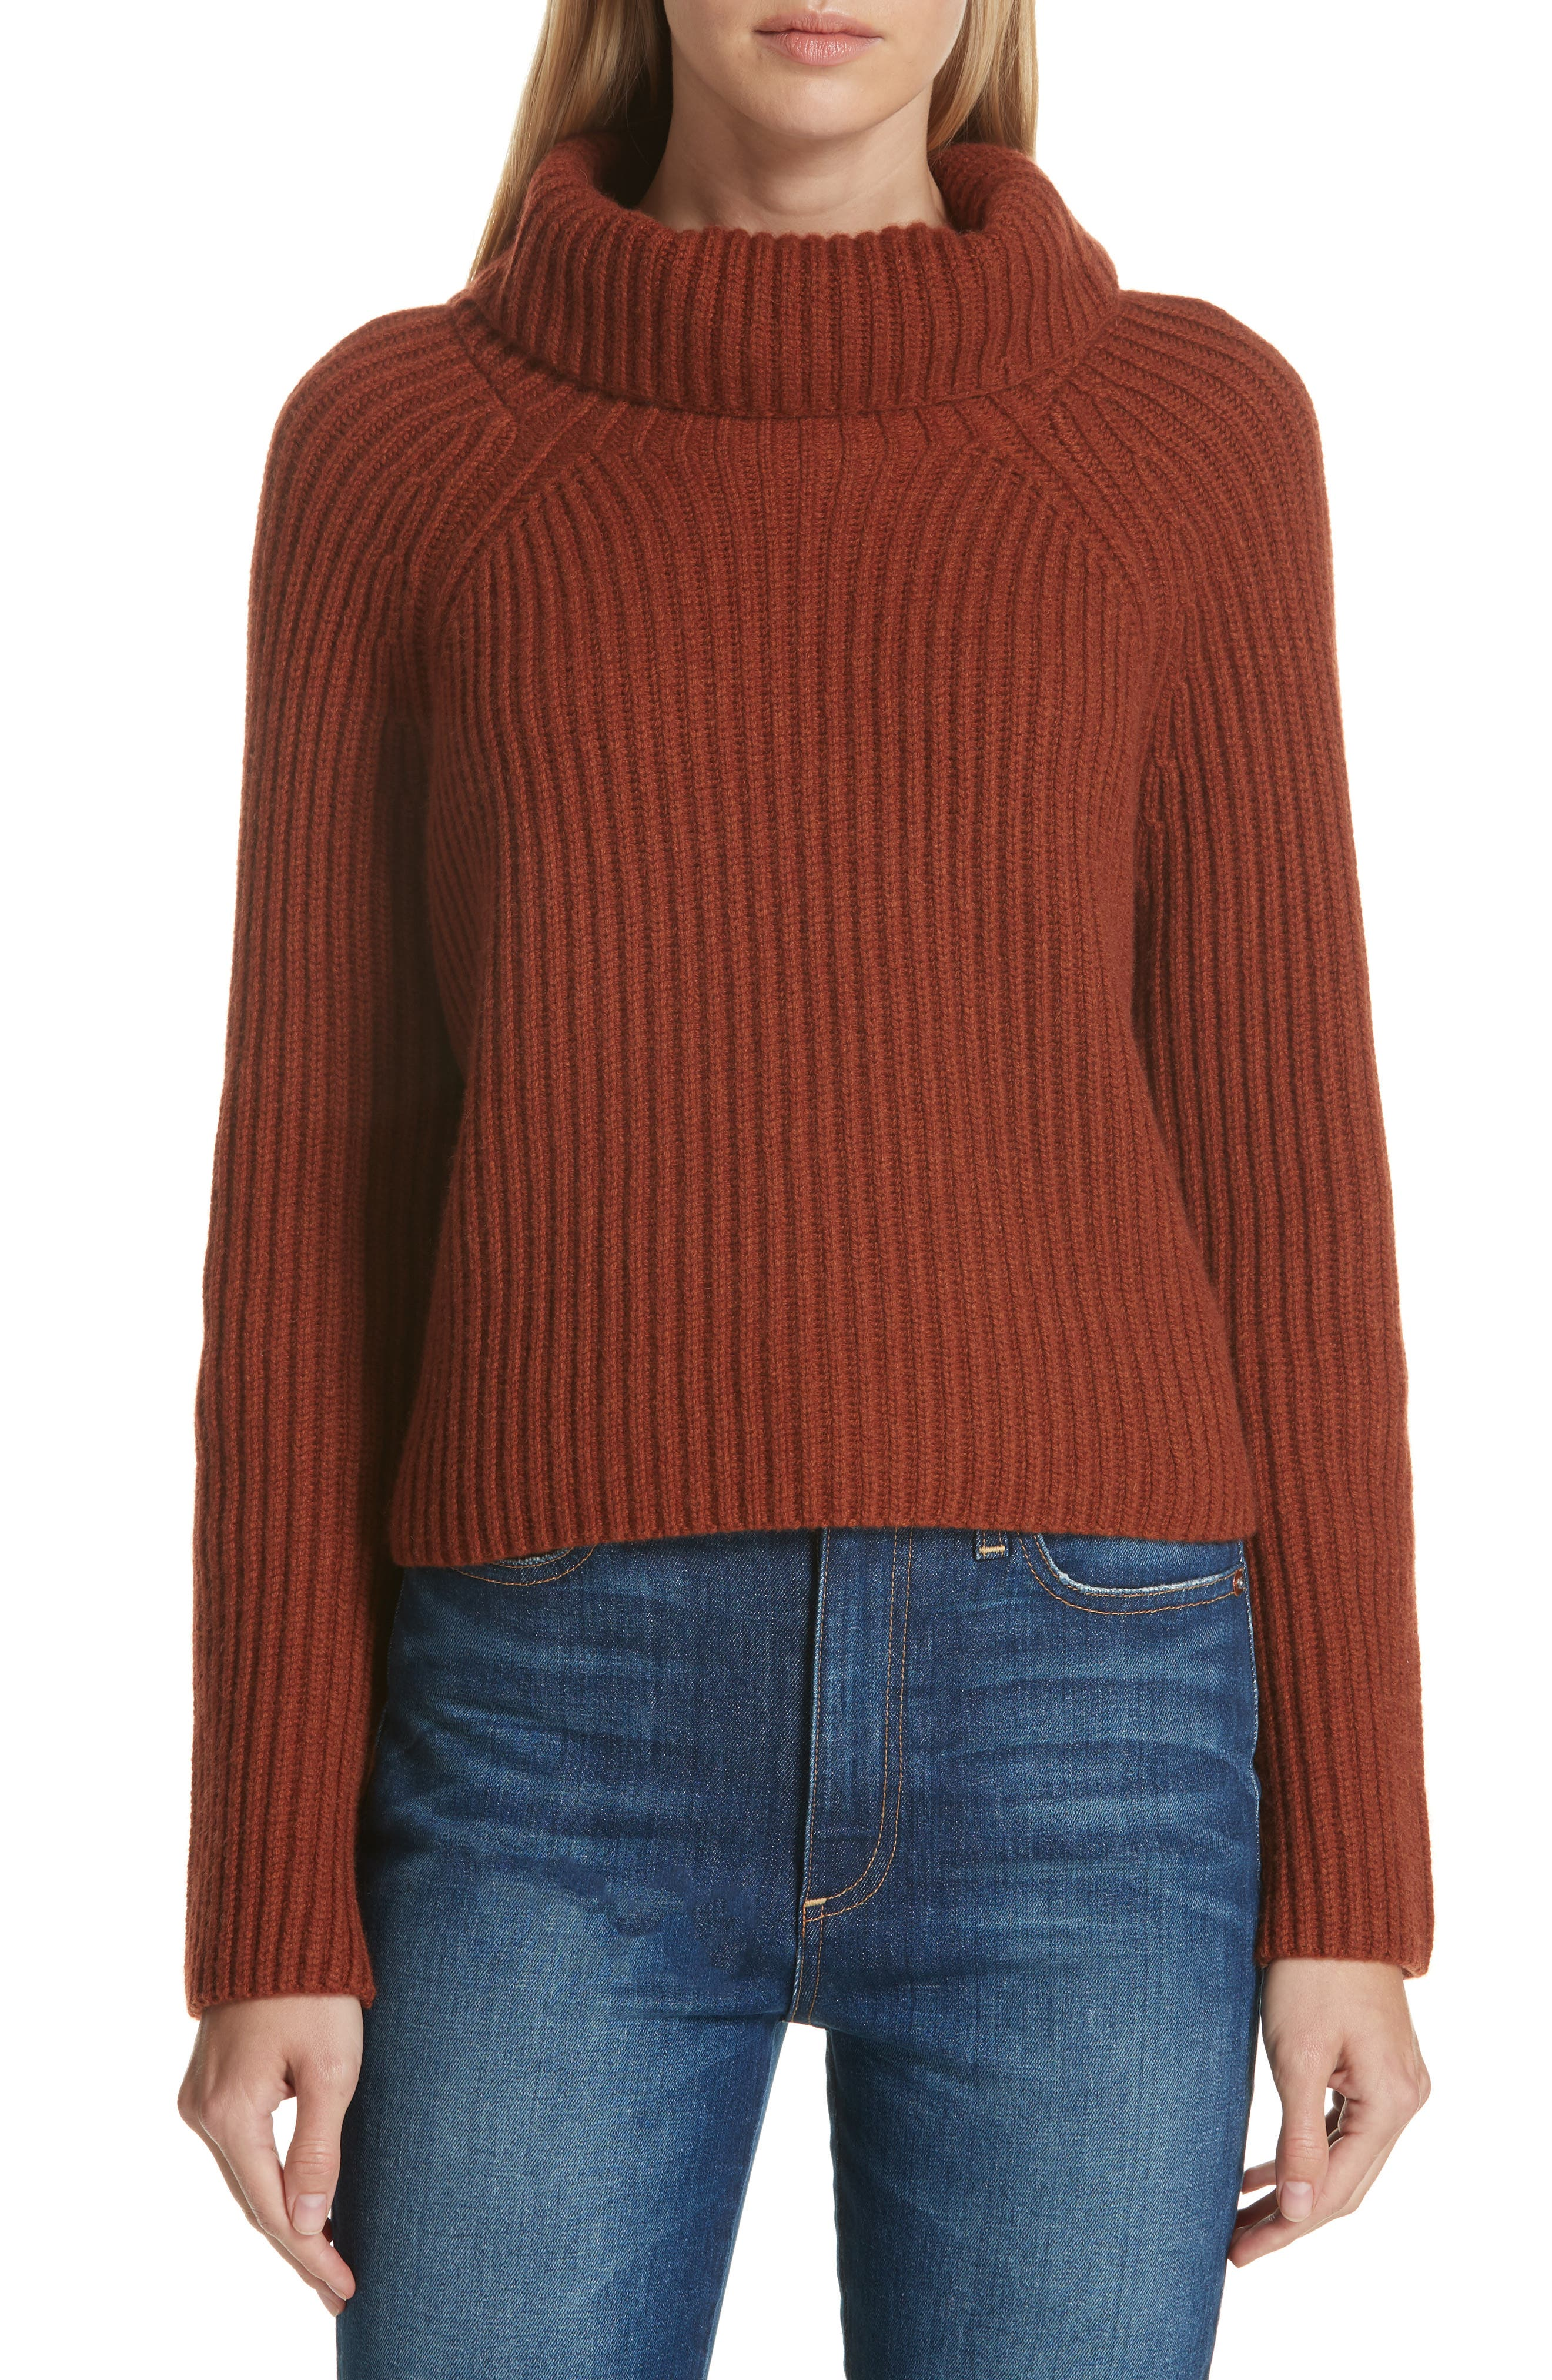 Ribbed Cashmere Turtleneck Sweater,                             Main thumbnail 1, color,                             221